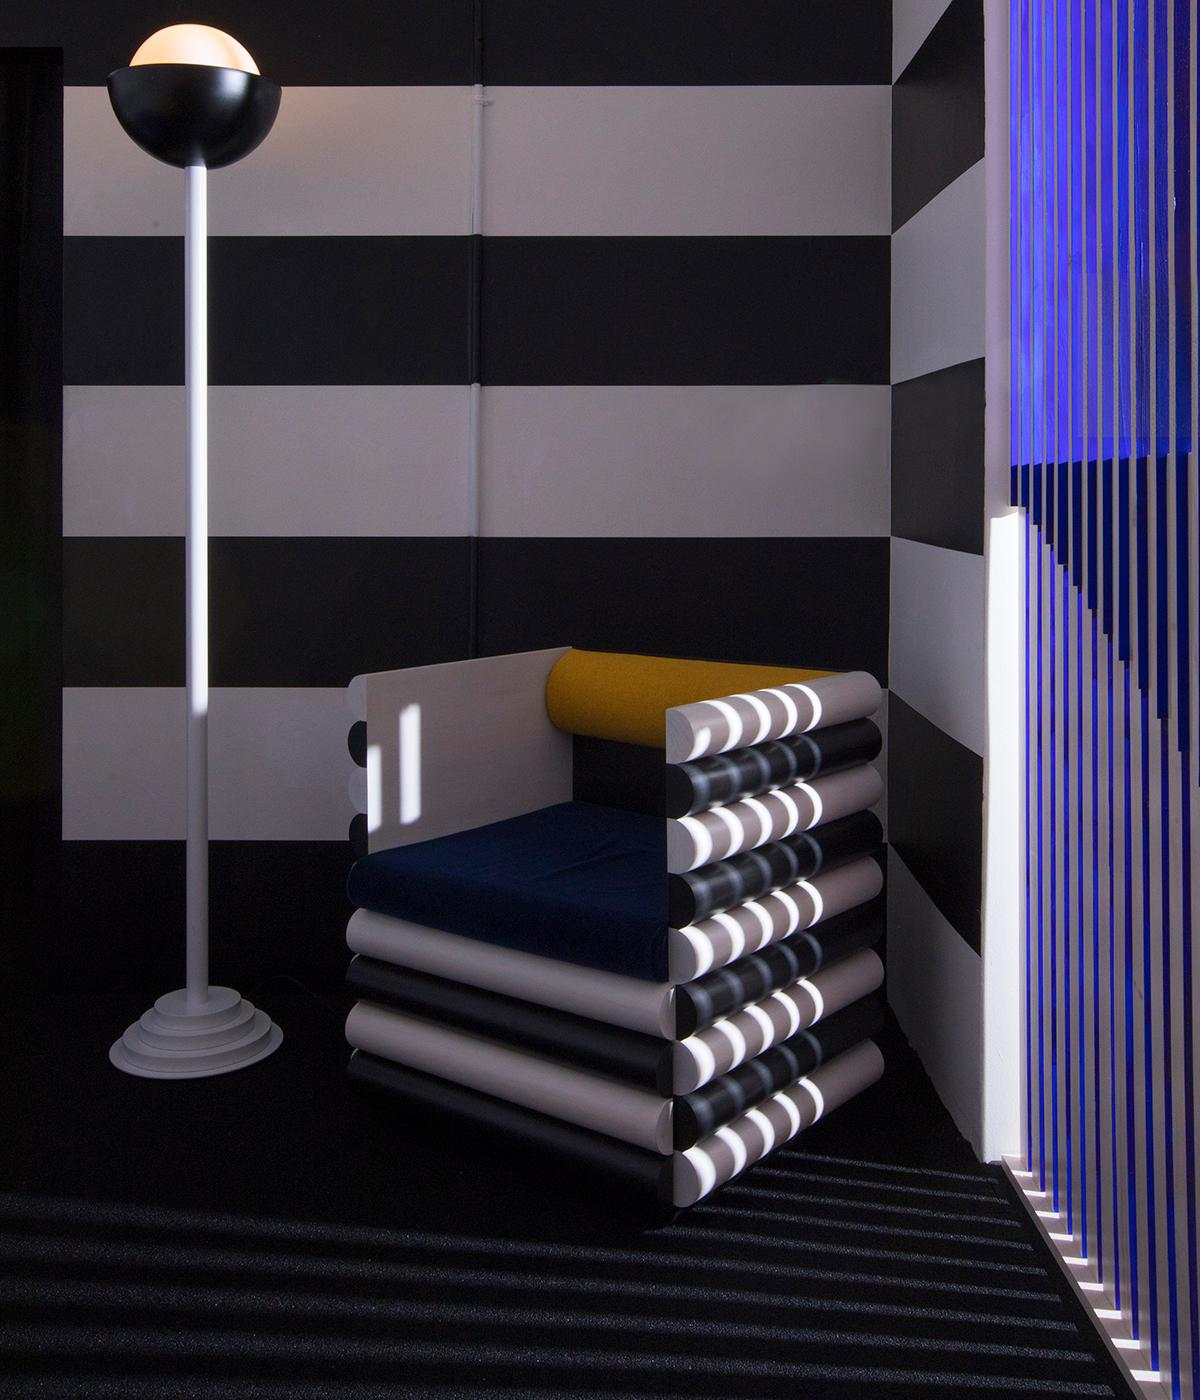 Conceptual hotel suite by Hannah Bigeleisen and Steven Bukowski and HotelTonight at Sight Unseen Offsite